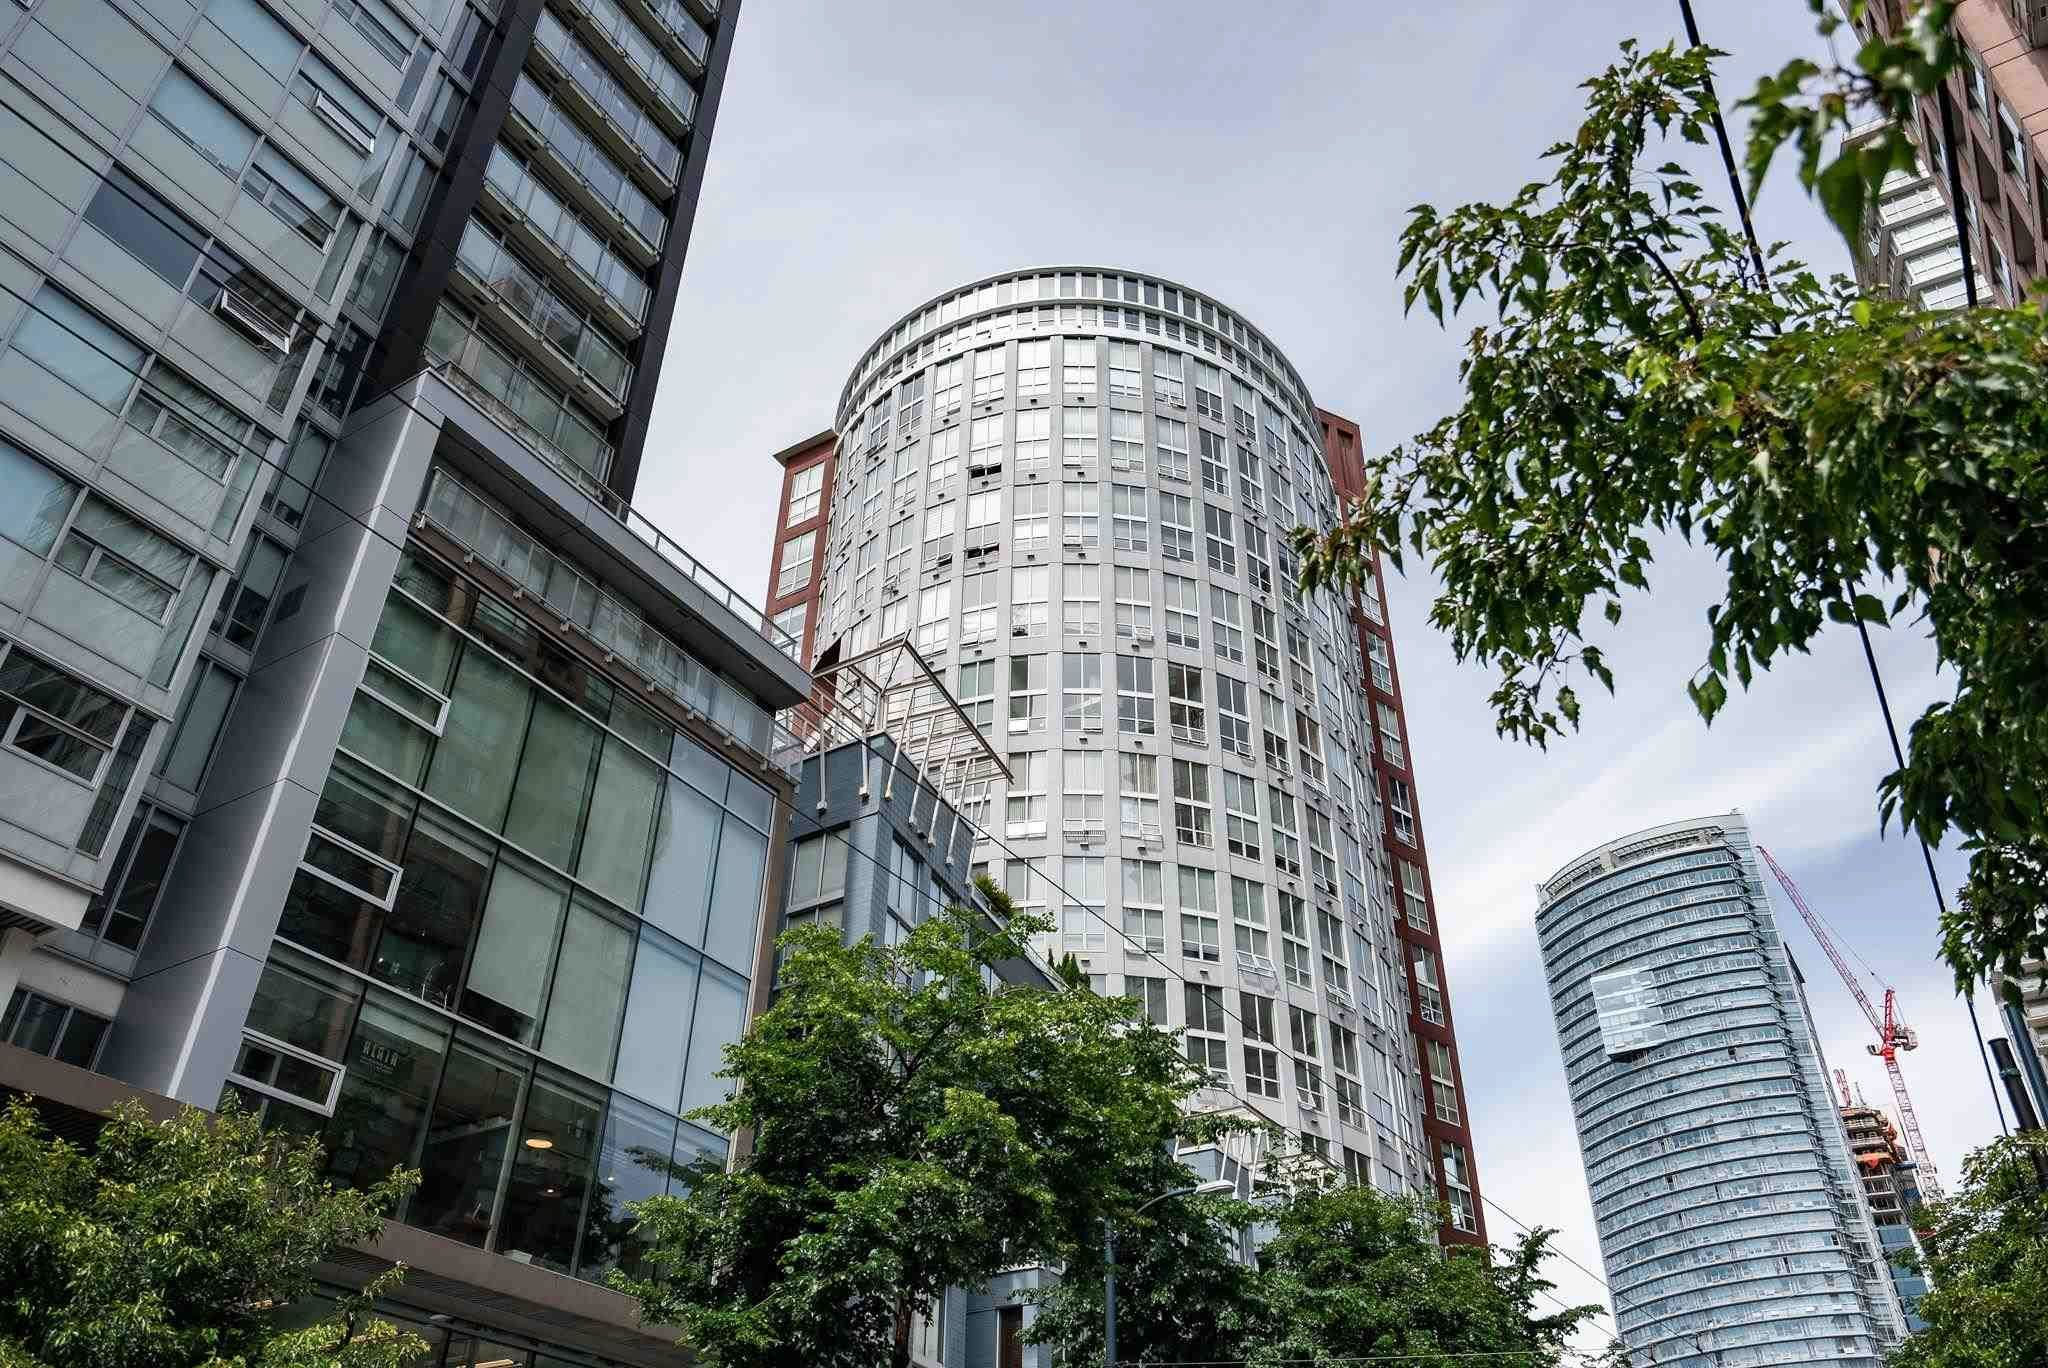 """Main Photo: 504 933 SEYMOUR Street in Vancouver: Downtown VW Condo for sale in """"The Spot"""" (Vancouver West)  : MLS®# R2595342"""